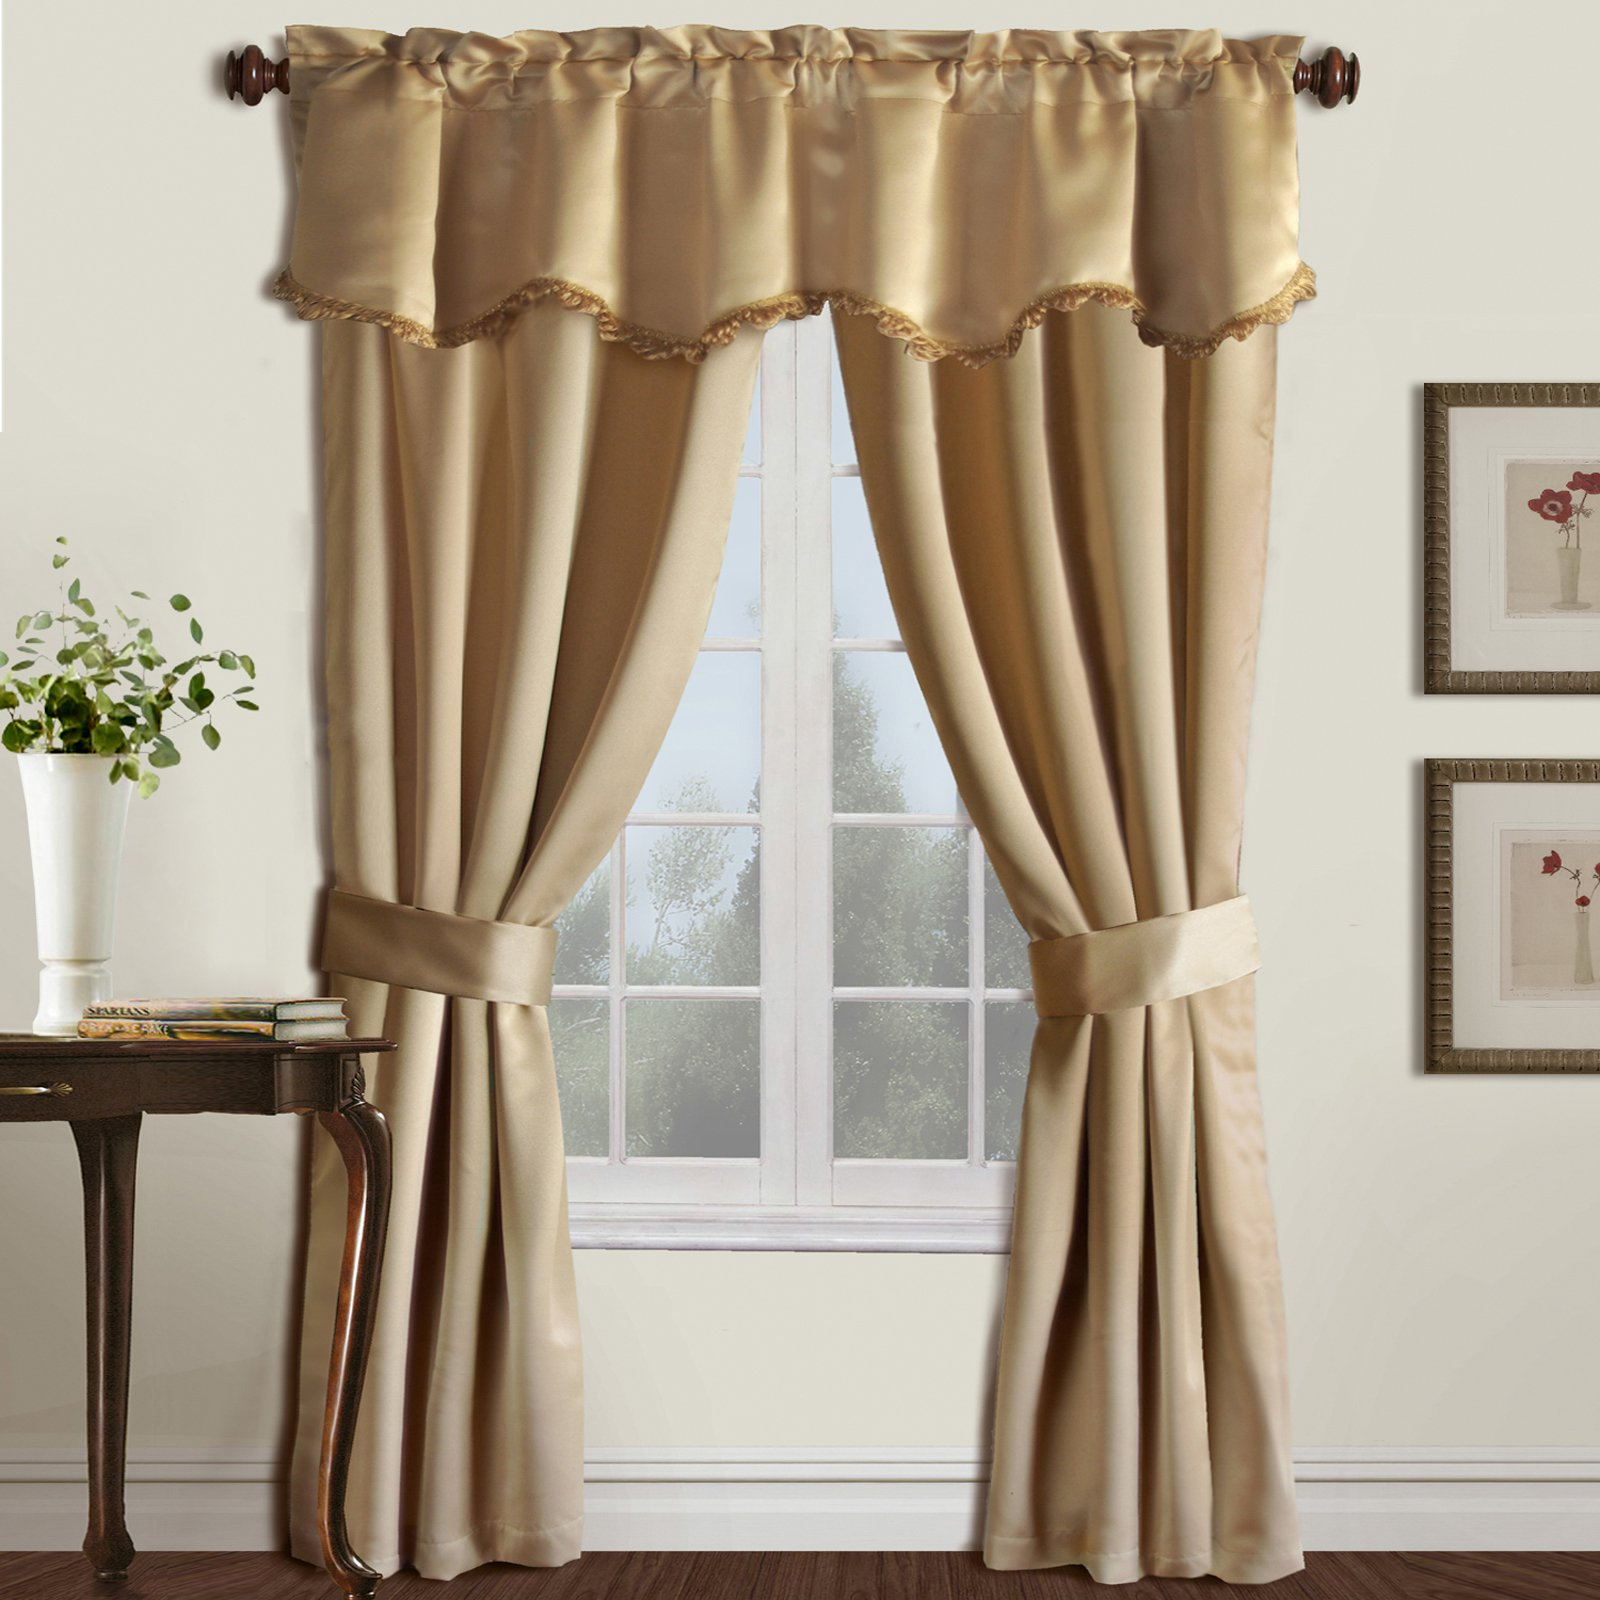 style stock burlington awesome chevron of and homes coat better gardens curtains walmart pattern factory panel curtain